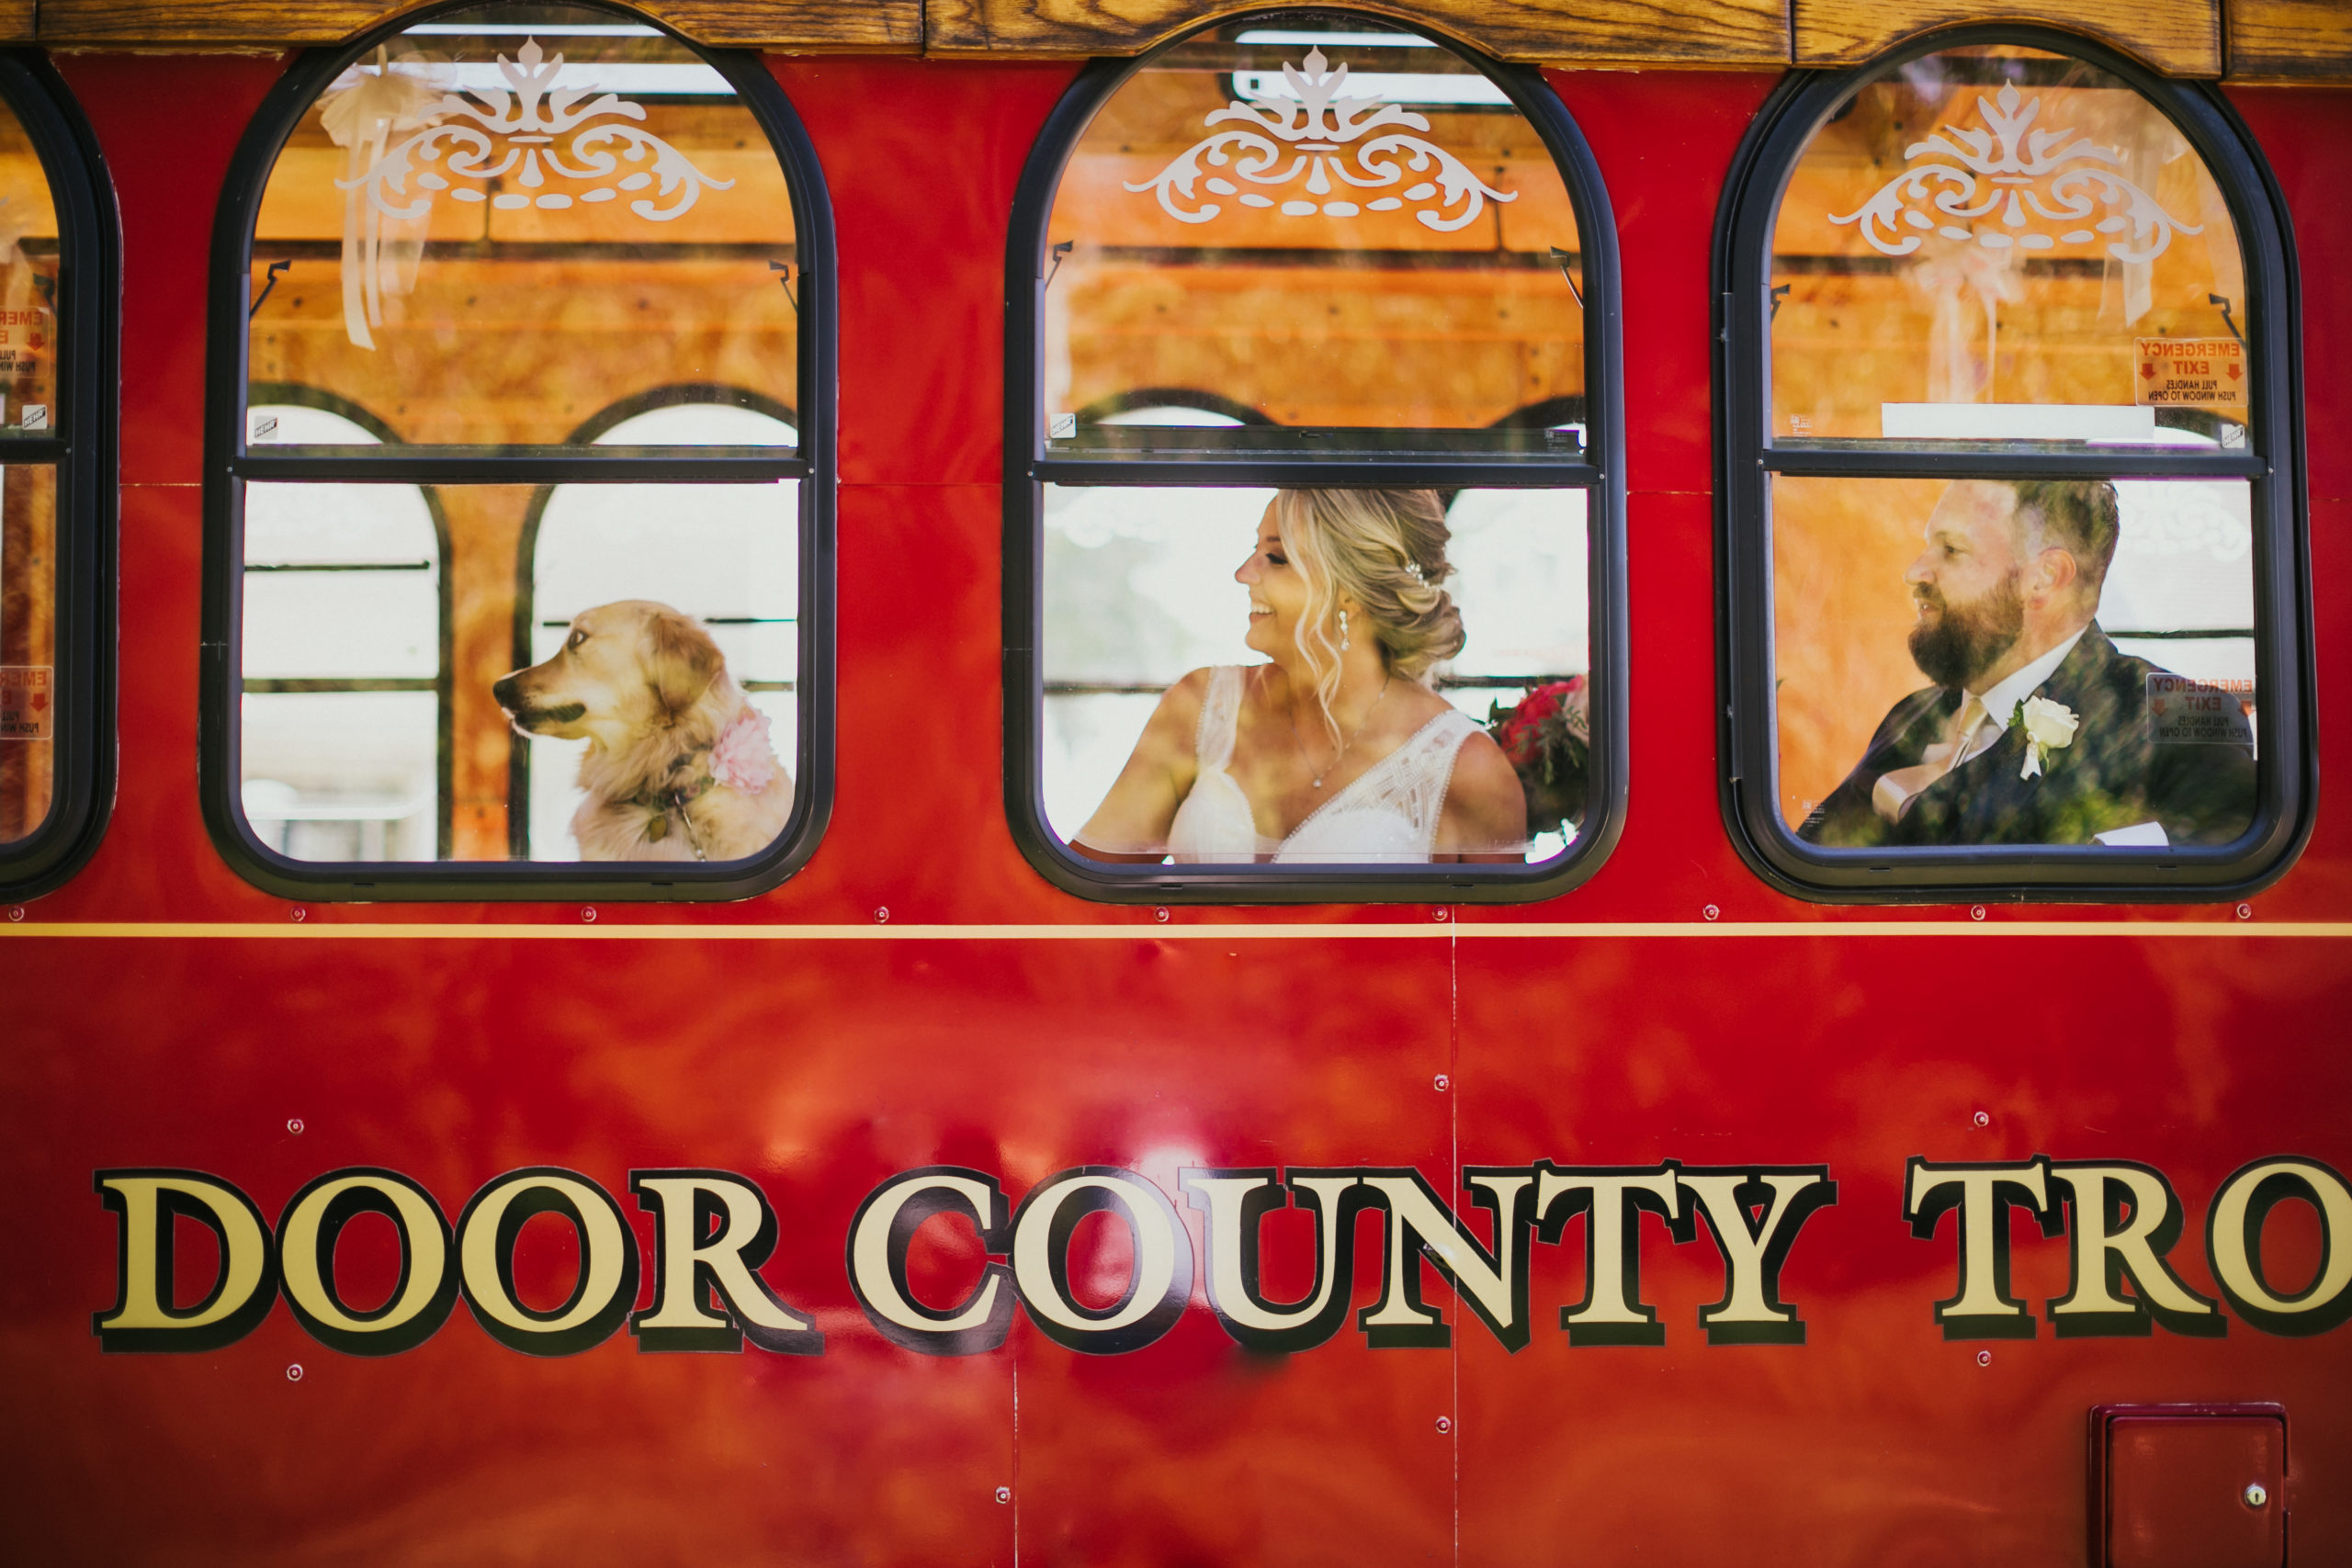 A dog, bride, and groom sit on the Door County Trolley